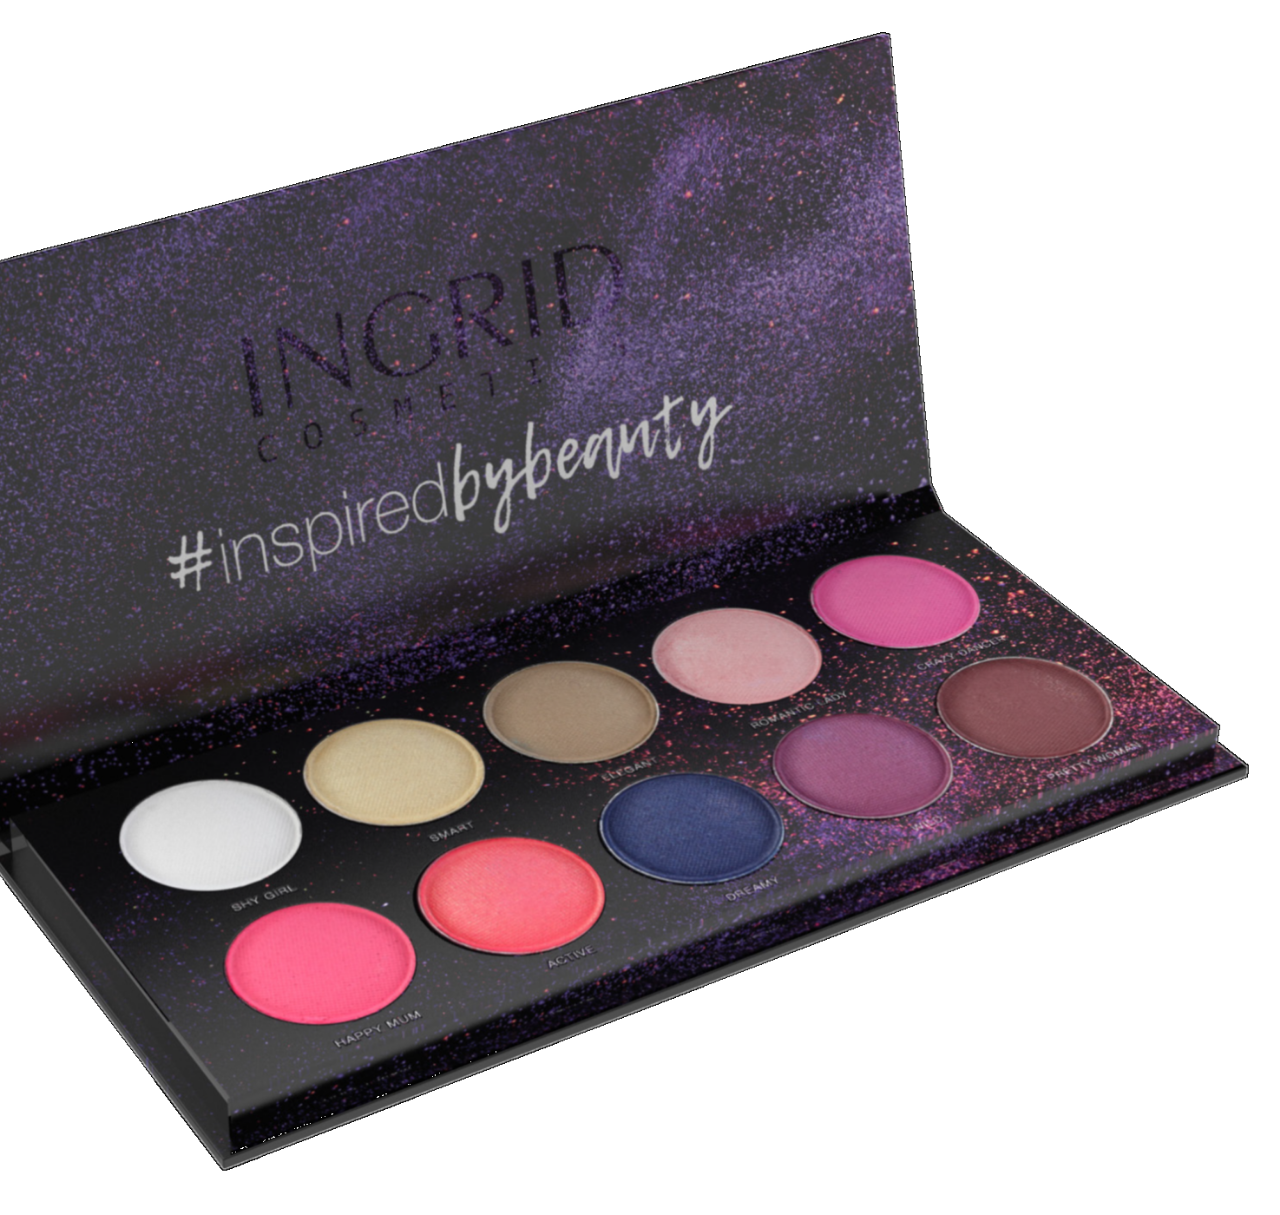 Palette de 10 ombres à paupières  Colors Woman Nature - 27g - Ingrid